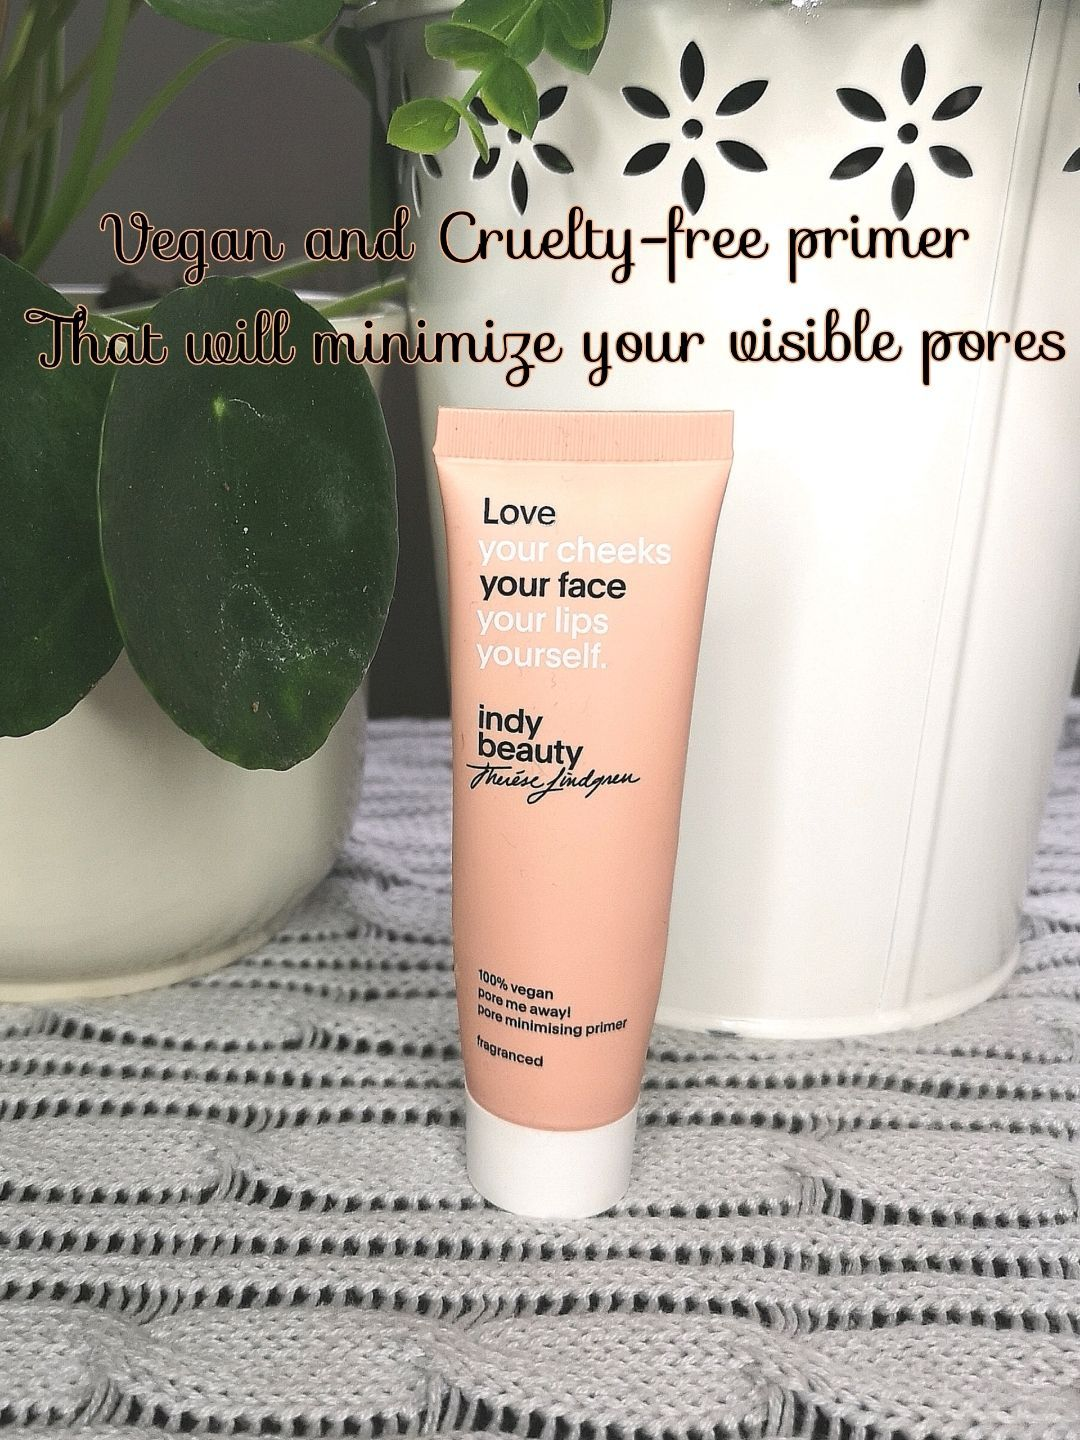 CrueltyFree and Vegan Primer by Indy Beauty. Do you have